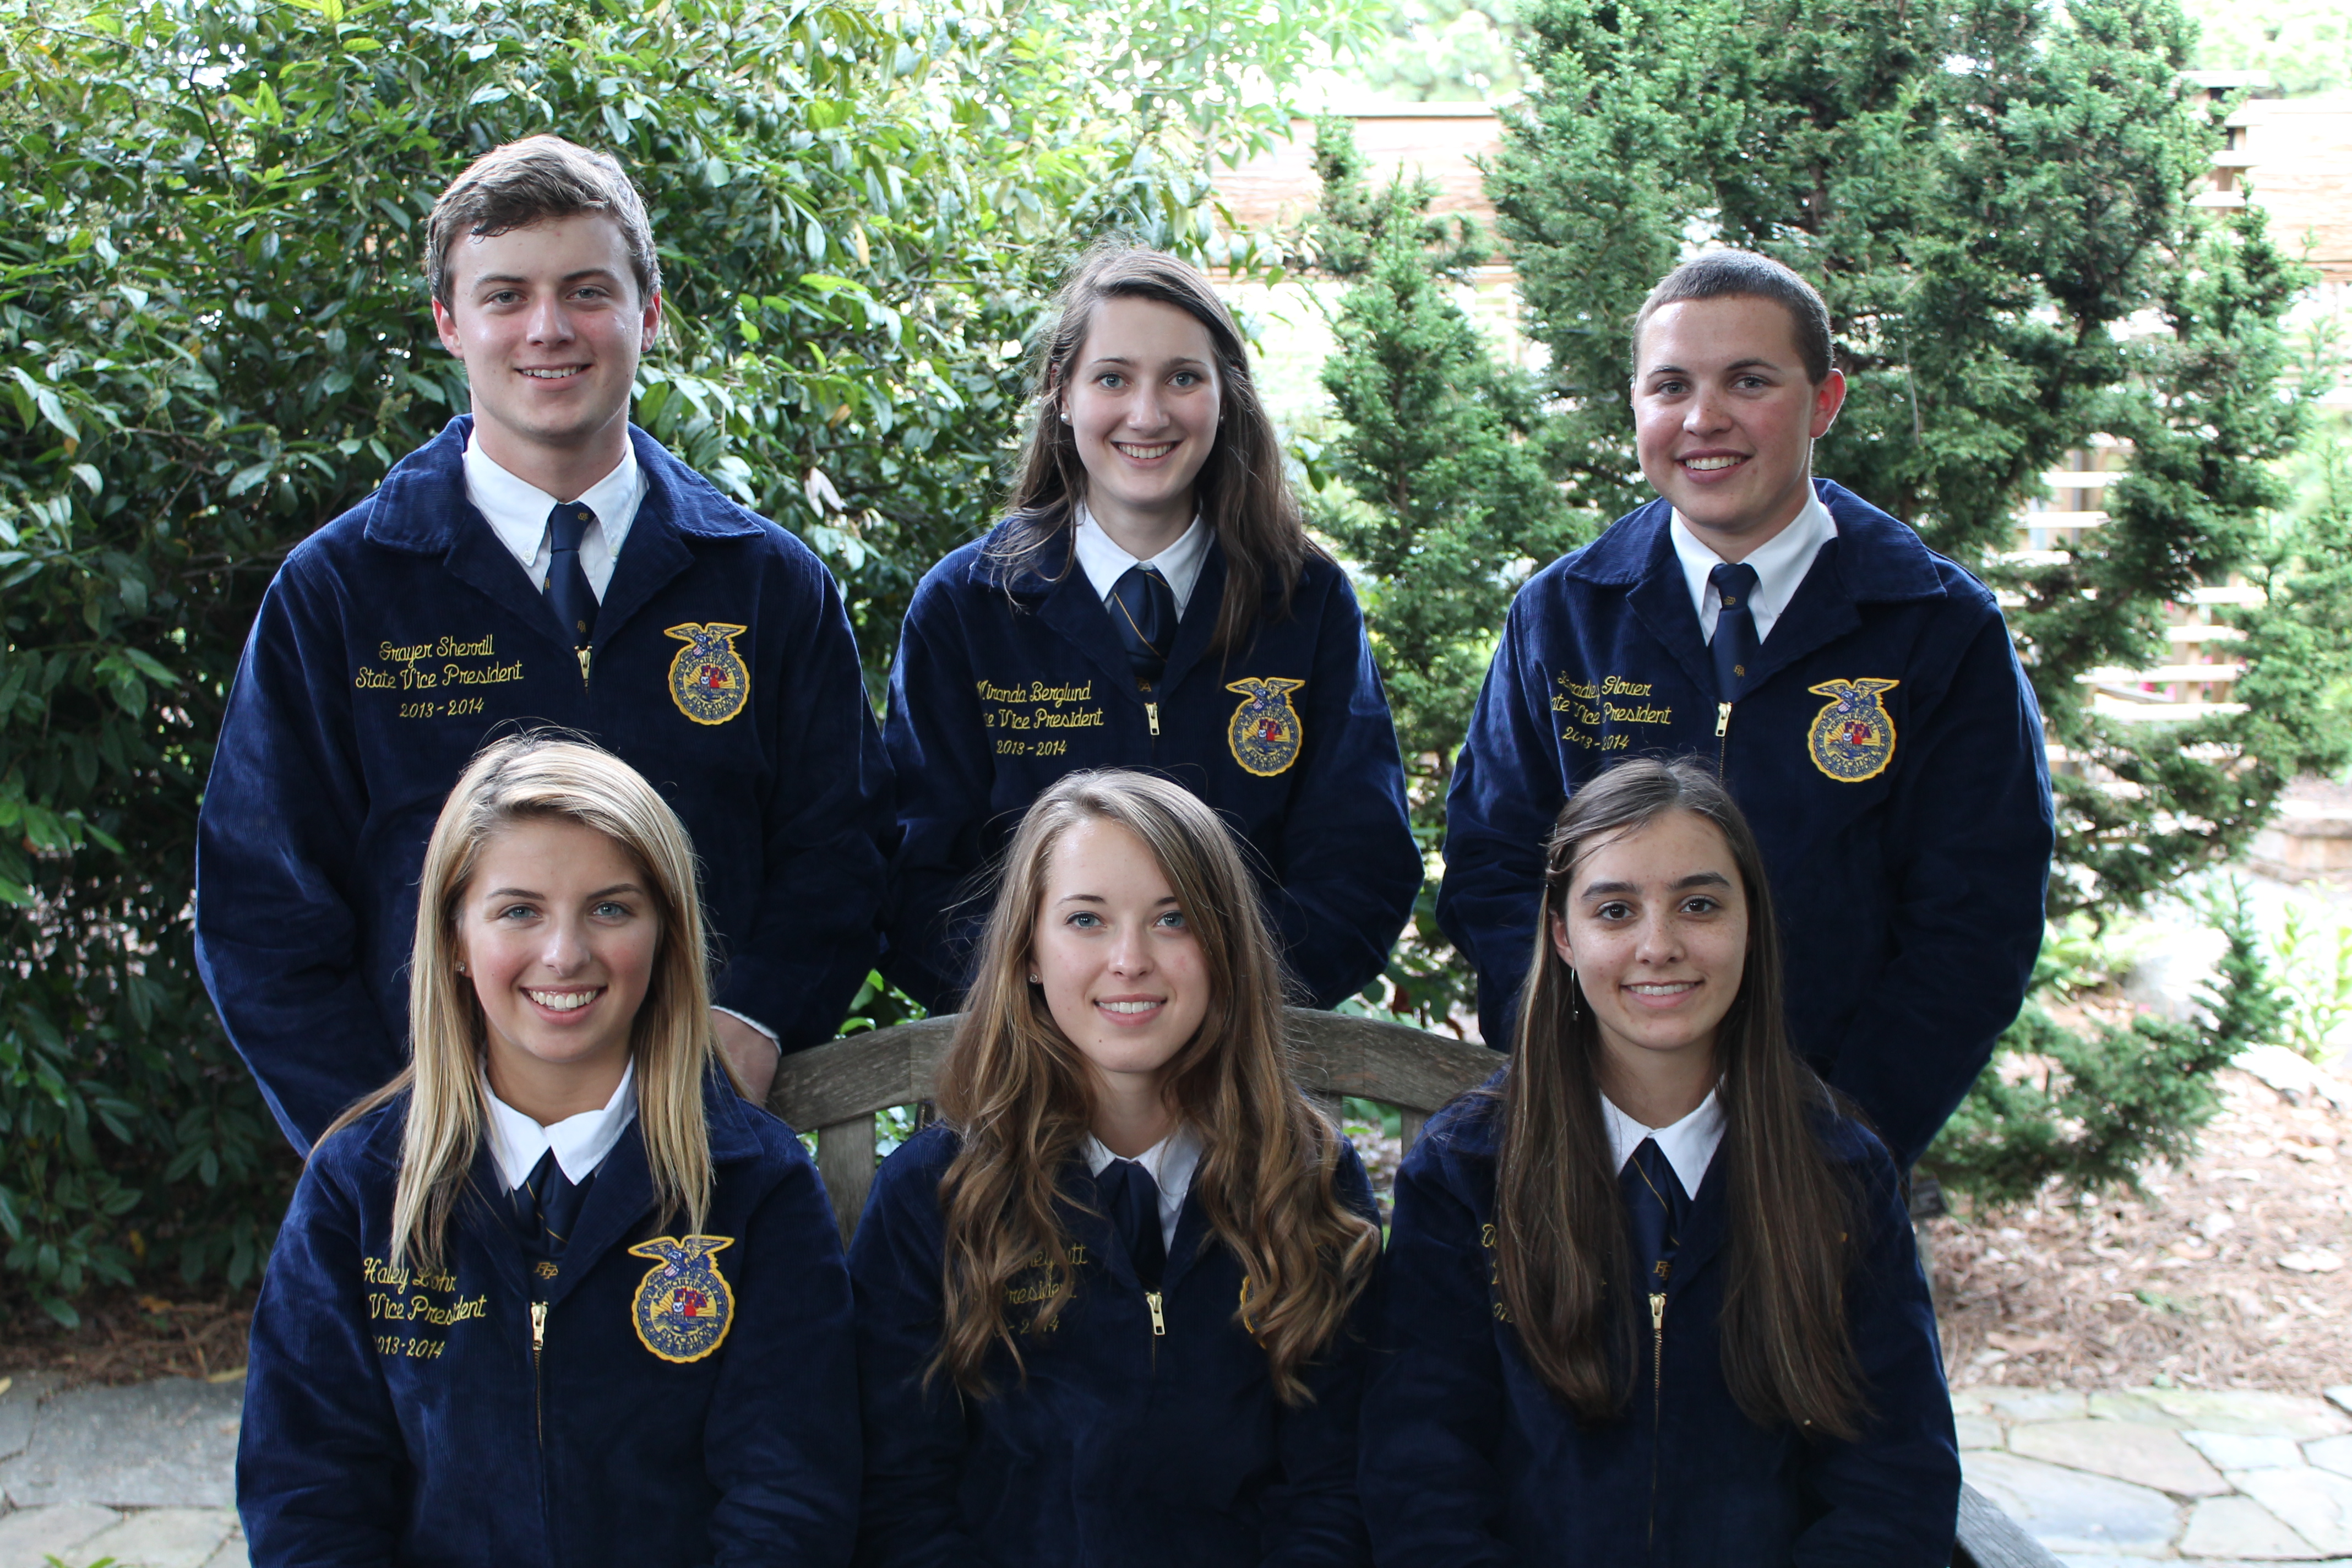 2013-2014 State Officers